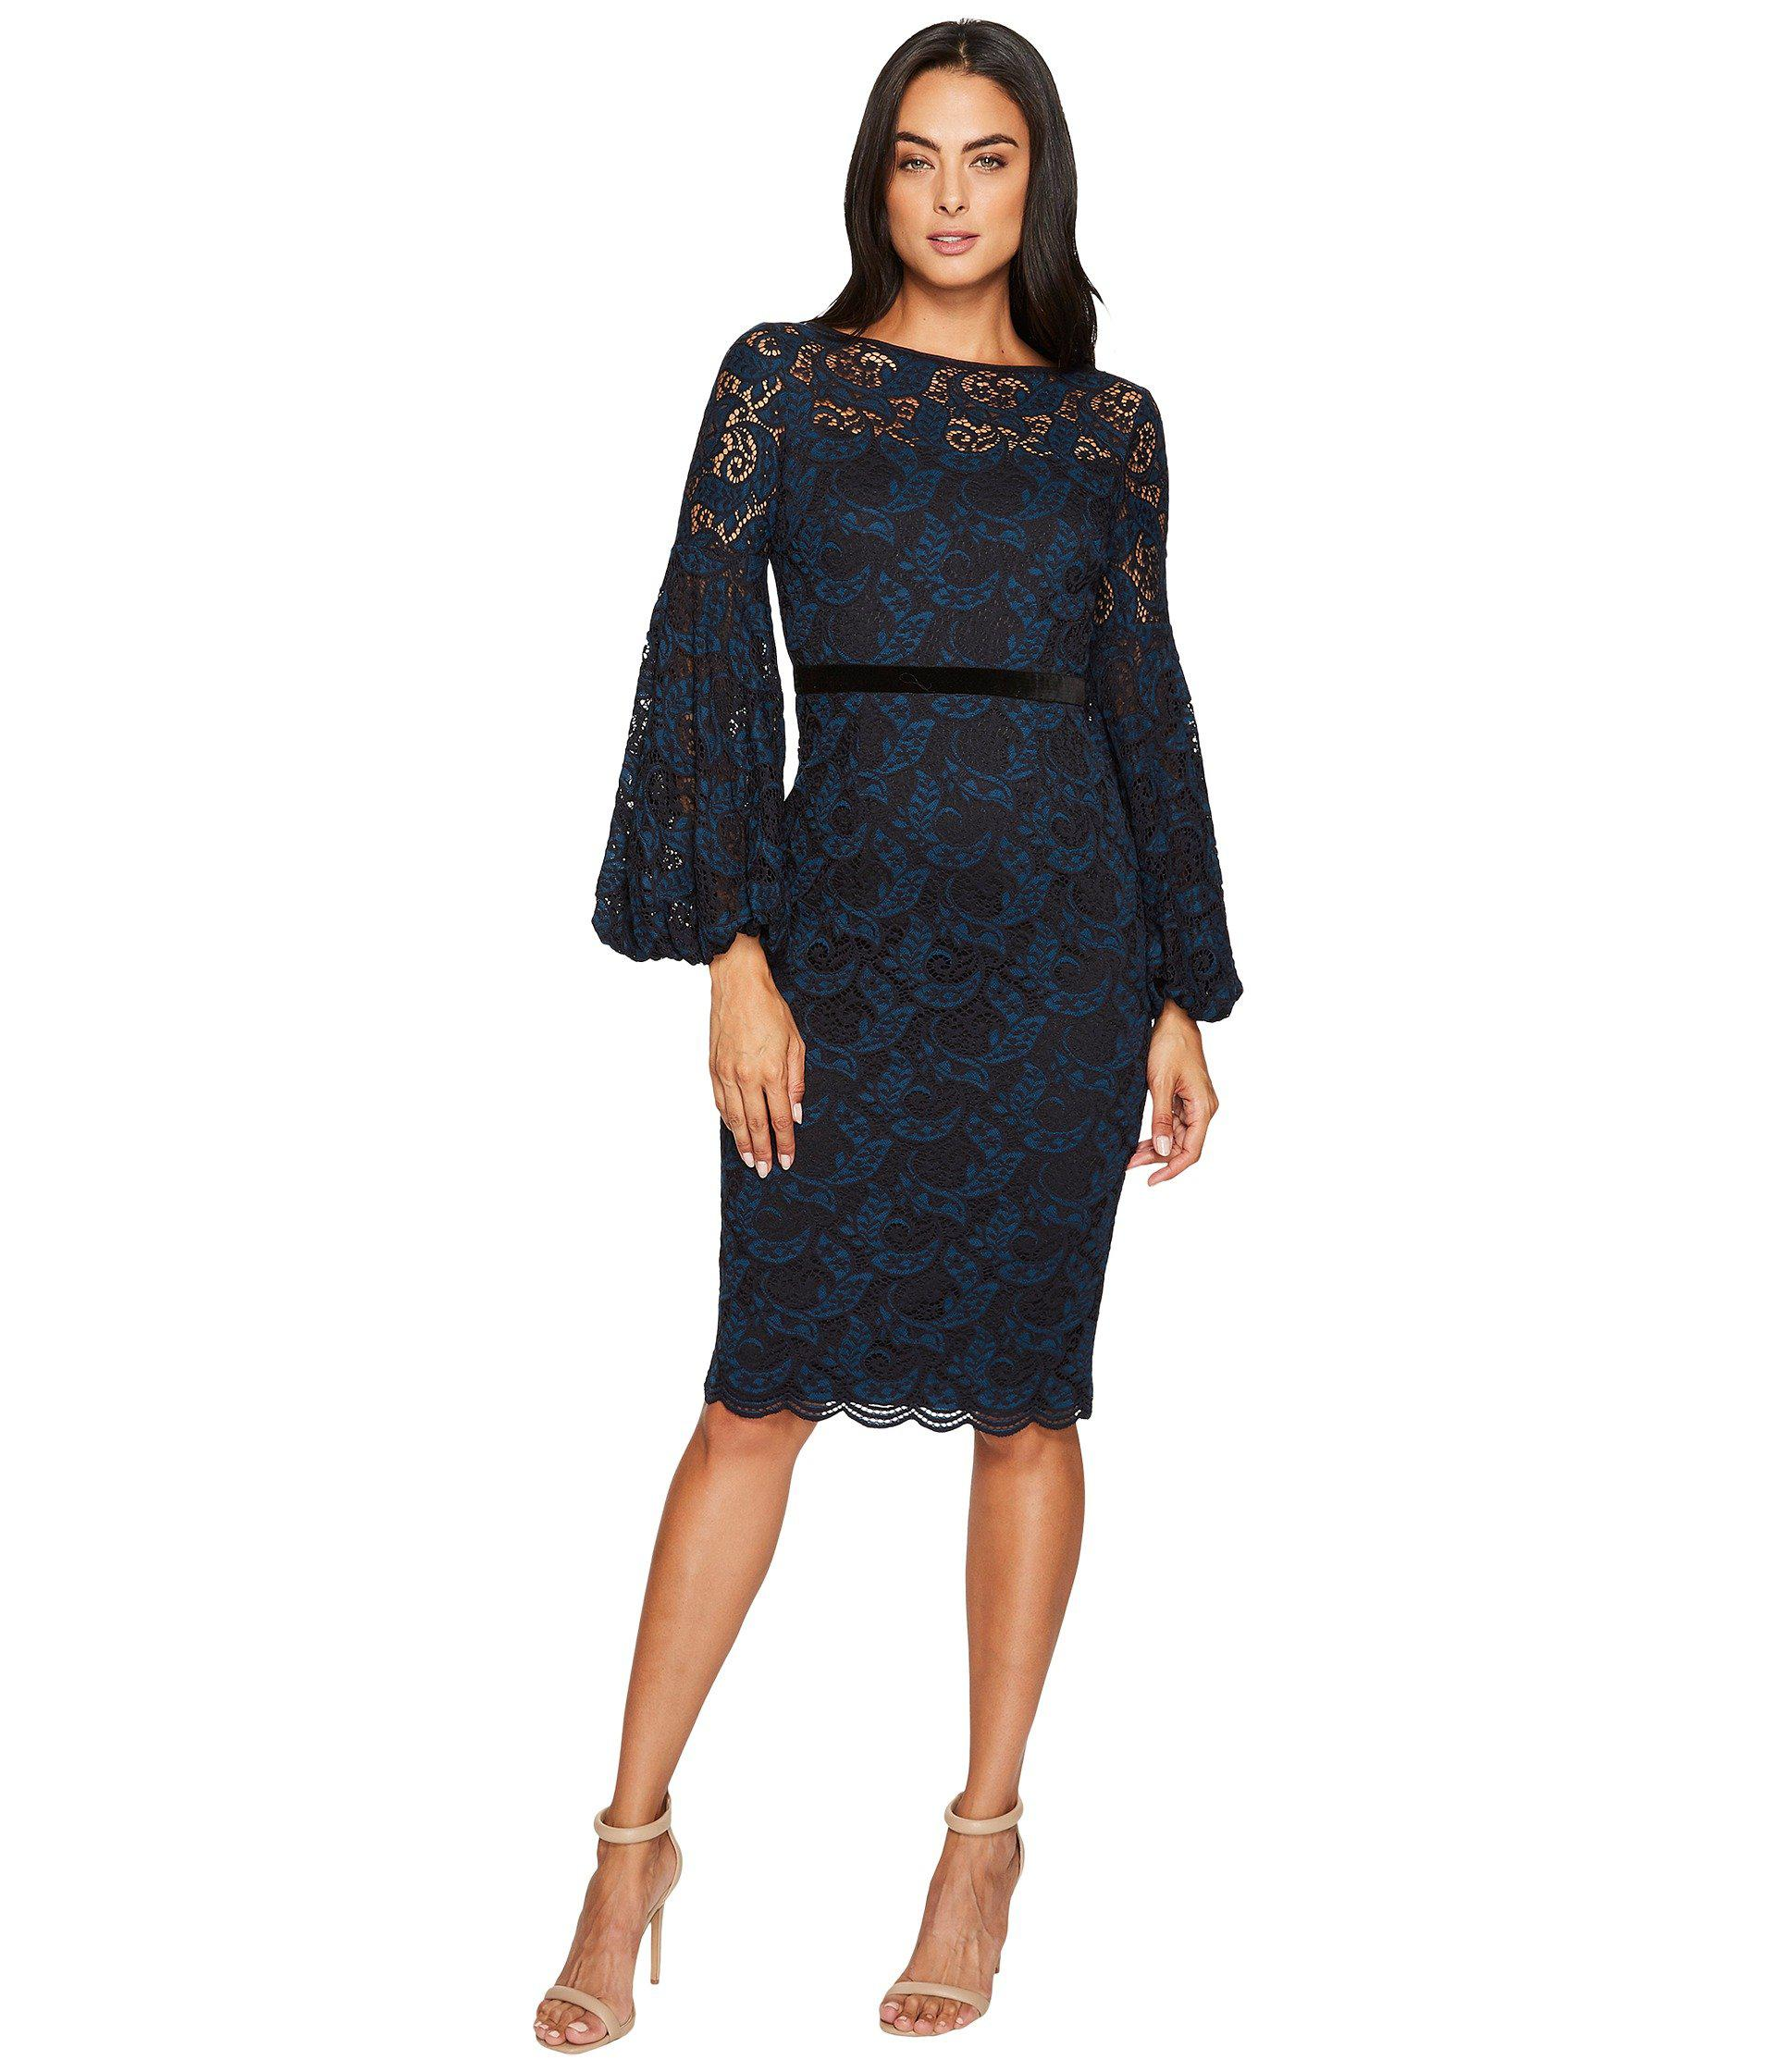 5fef5157 Gallery. Previously sold at: 6PM, Zappos · Women's Lace Dresses